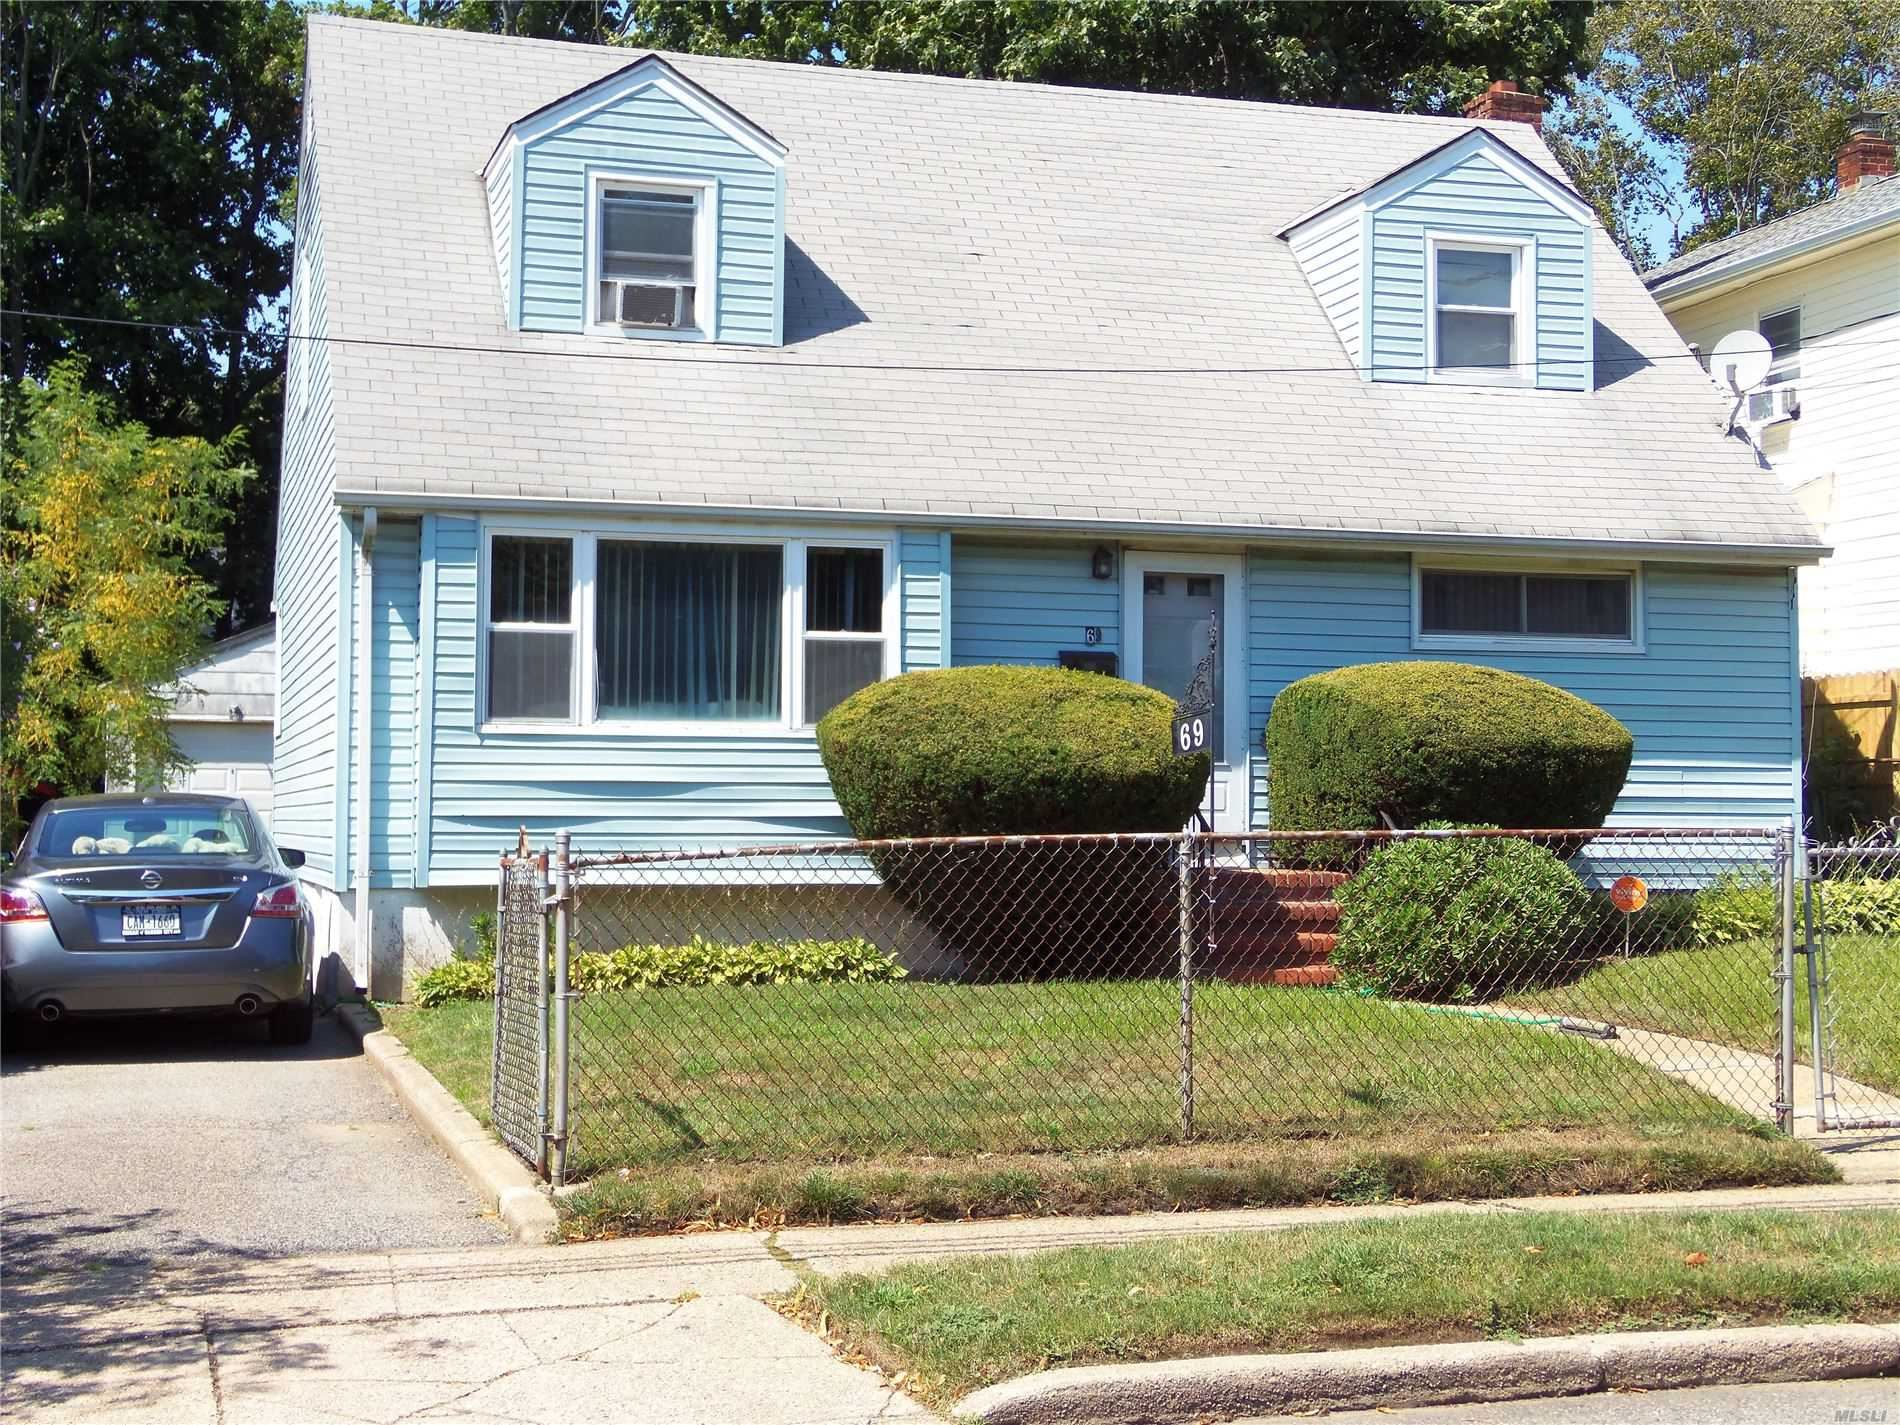 69 Independence Ave, Freeport, NY 11520 - MLS#: 3238037